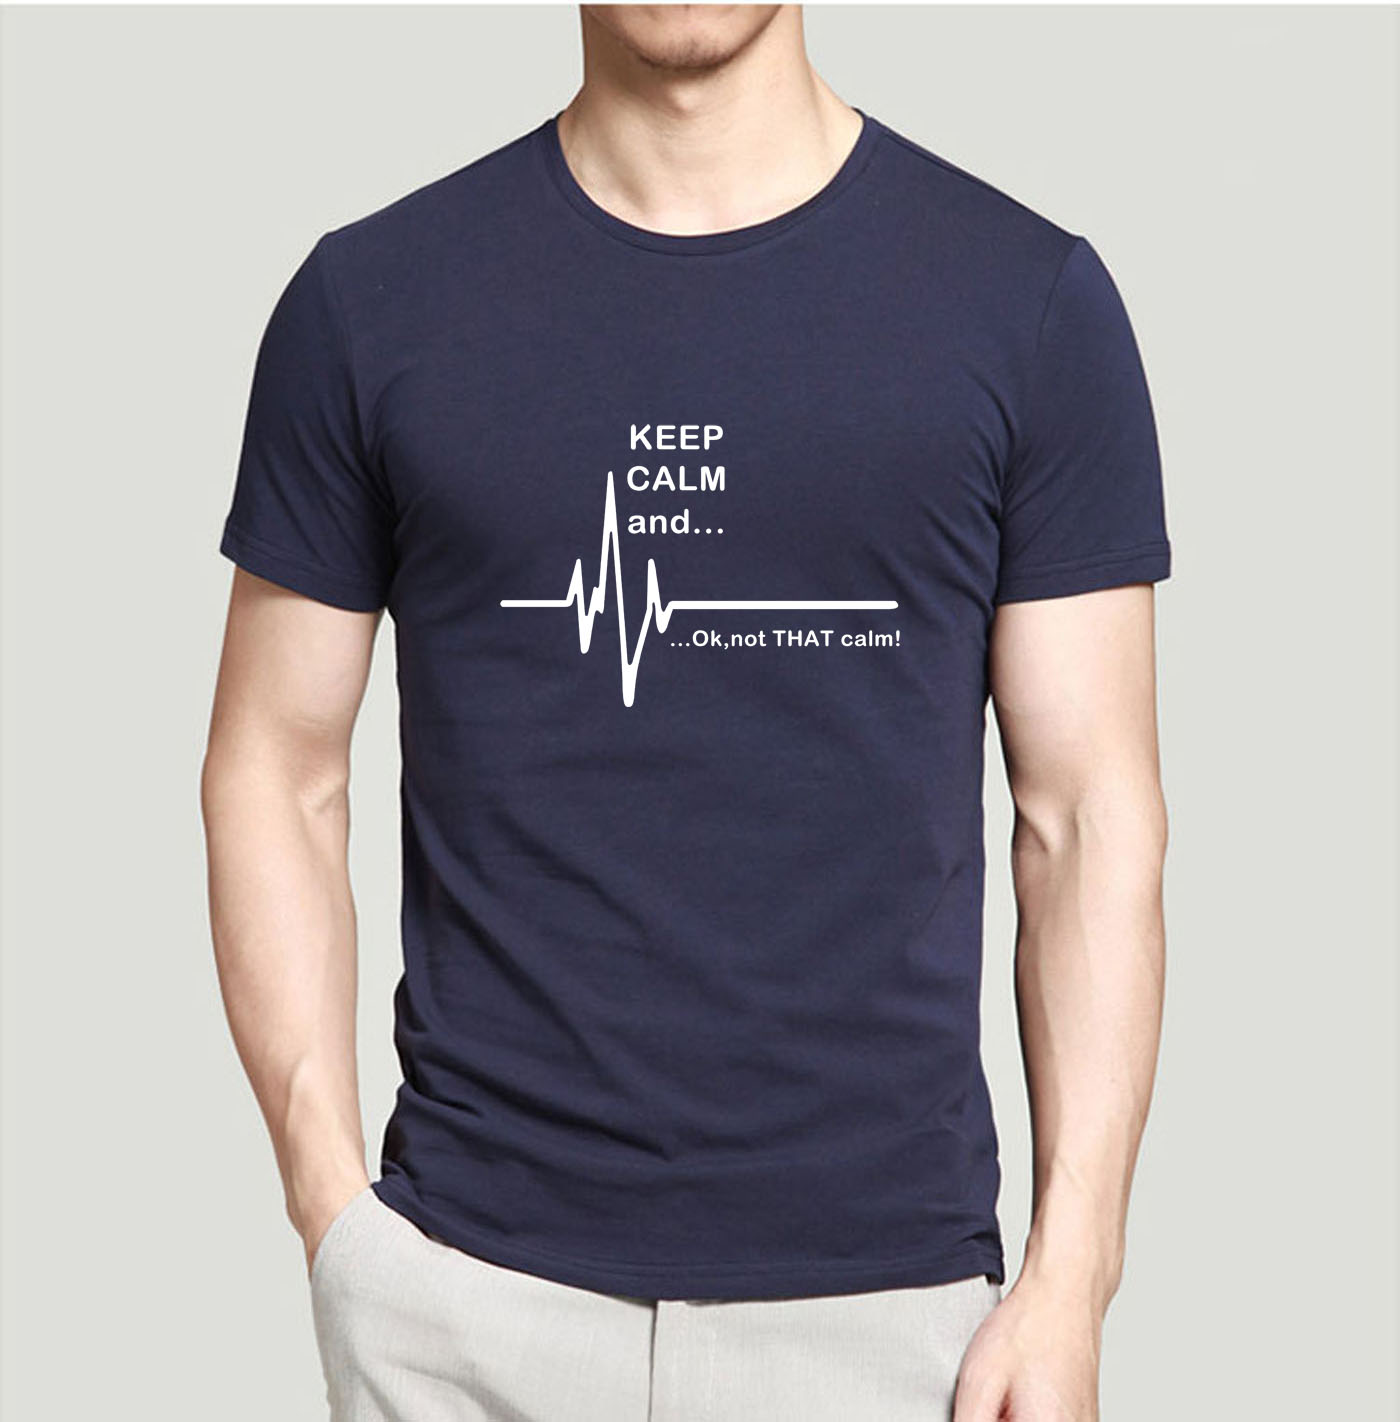 2019 Summer Men T Shirt Keep Calm And...Not That Calm EKG Heart Rate Funny Short Sleeve Shirt Casual Cotton Slim Fit Tops Tees